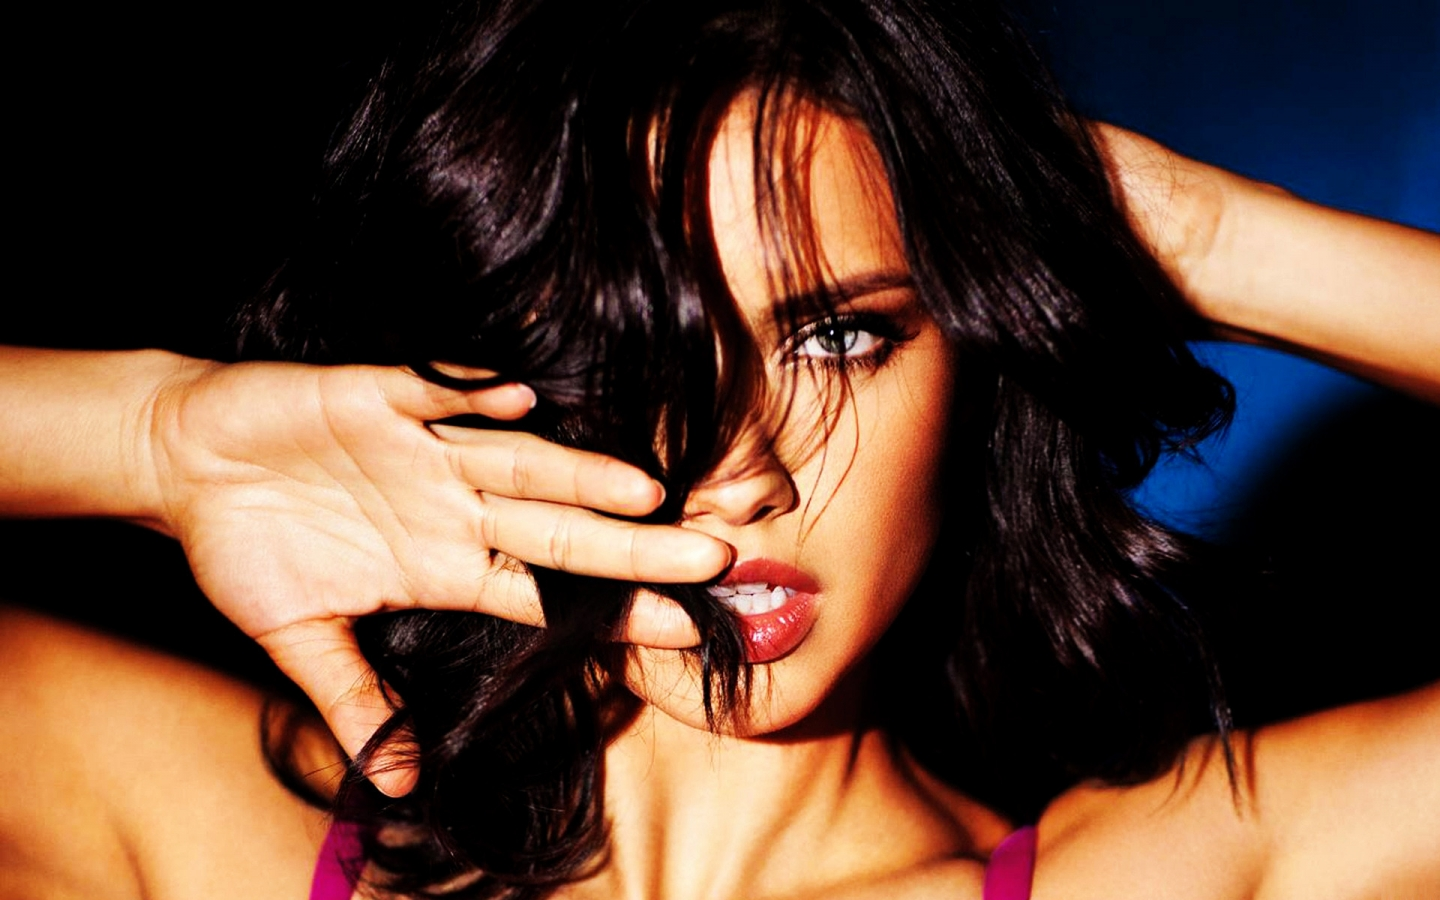 Superb Adriana Lima for 1440 x 900 widescreen resolution